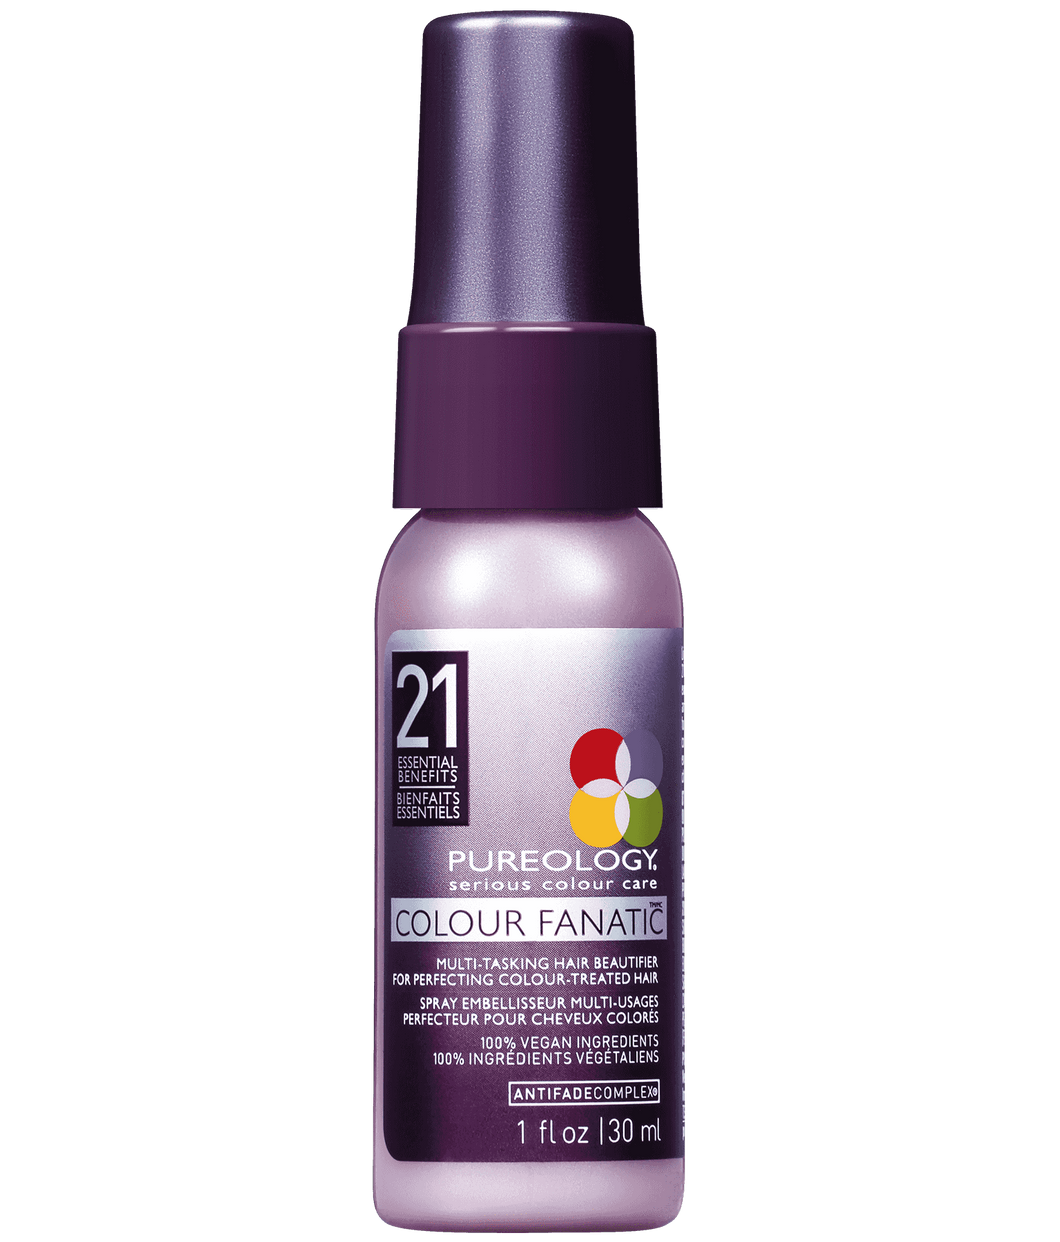 Colour Fanatic Multi-tasking Hair Beautifier 30 ml